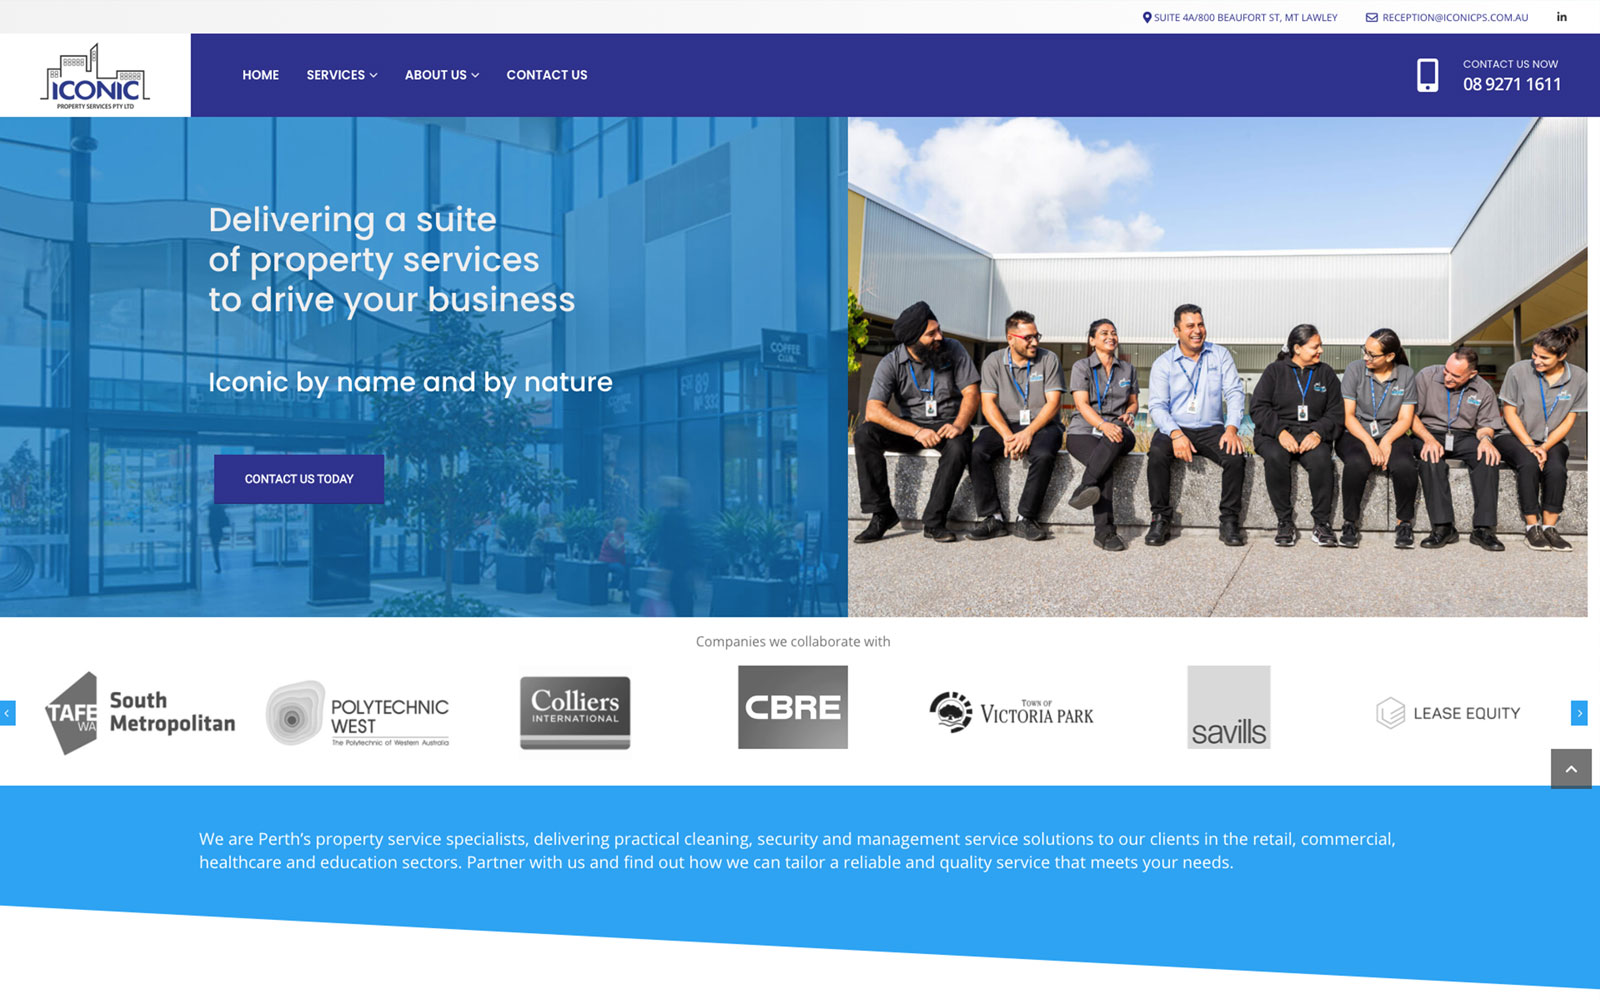 Another website successfully completed for Perth's property service specialists, Iconic Property Services.